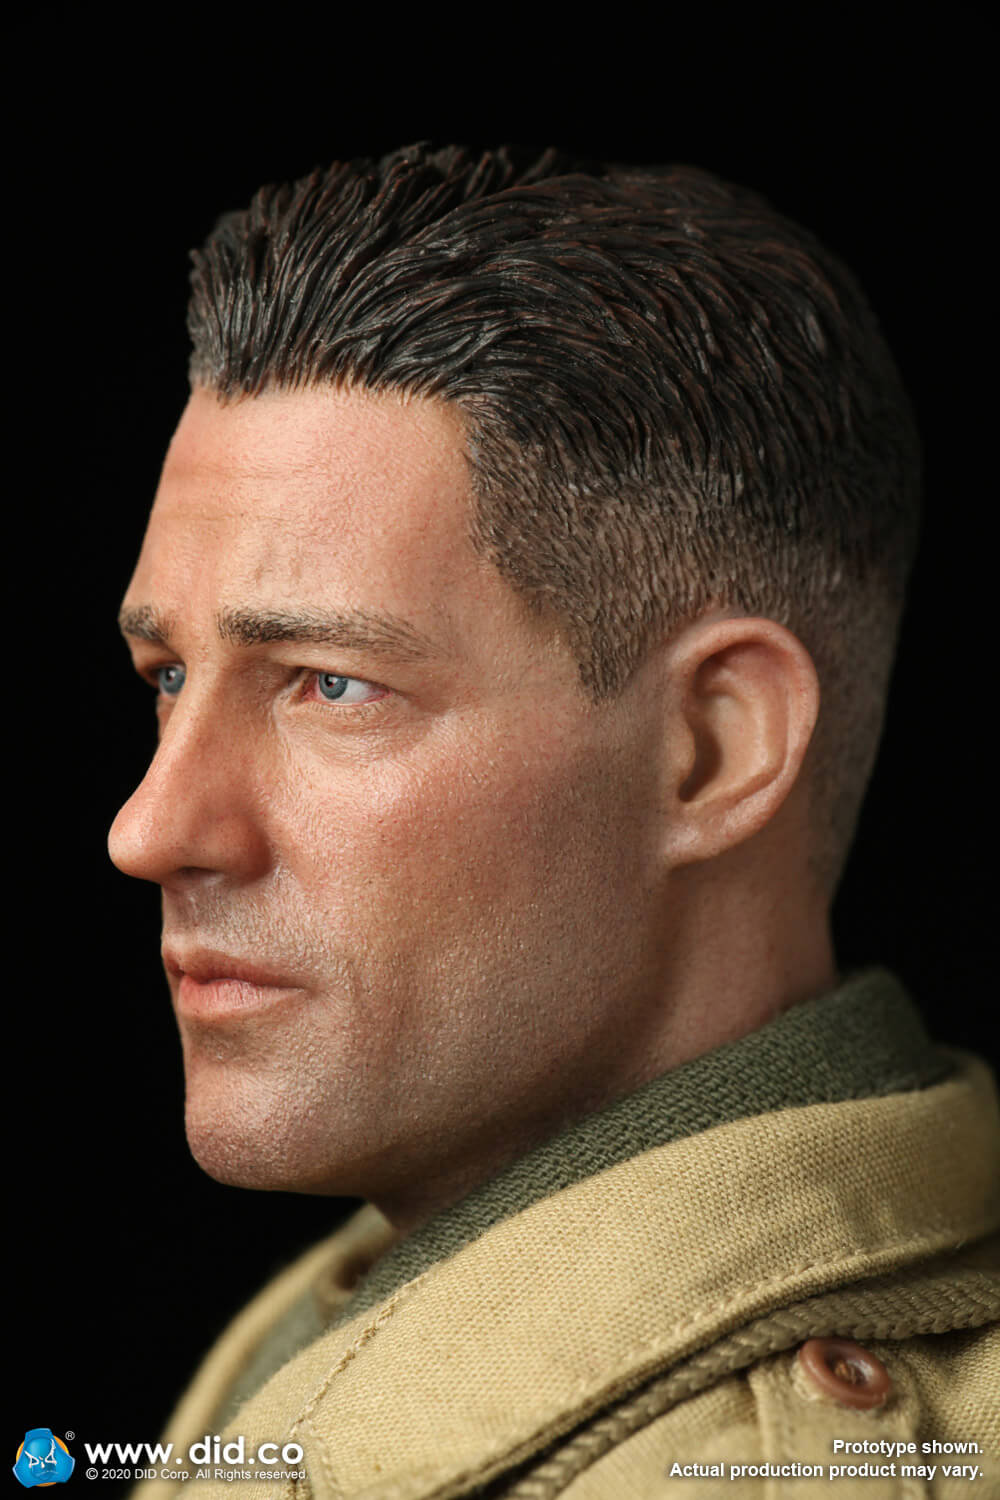 male - NEW PRODUCT: DiD: A80141 WWII US 2nd Ranger Battalion Private First Class Reiben 1/6 scale figure Us-2nd27